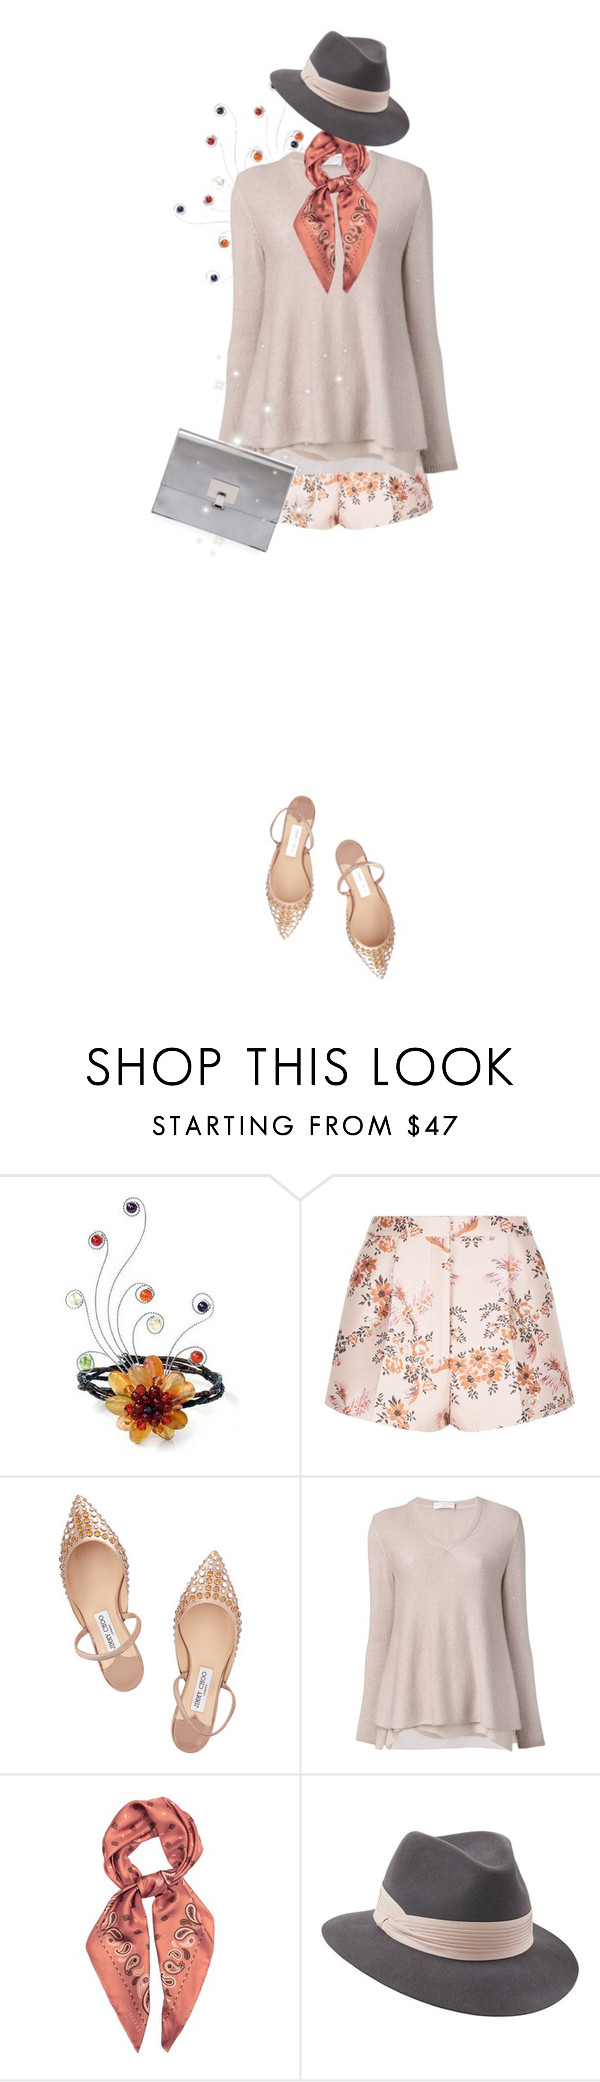 """""""street  style"""" by janemichaud-ipod ❤ liked on Polyvore featuring NOVICA, STELLA McCARTNEY, Jimmy Choo, Brunello Cucinelli, E L L E R Y, Penmayne of London and Proenza Schouler"""